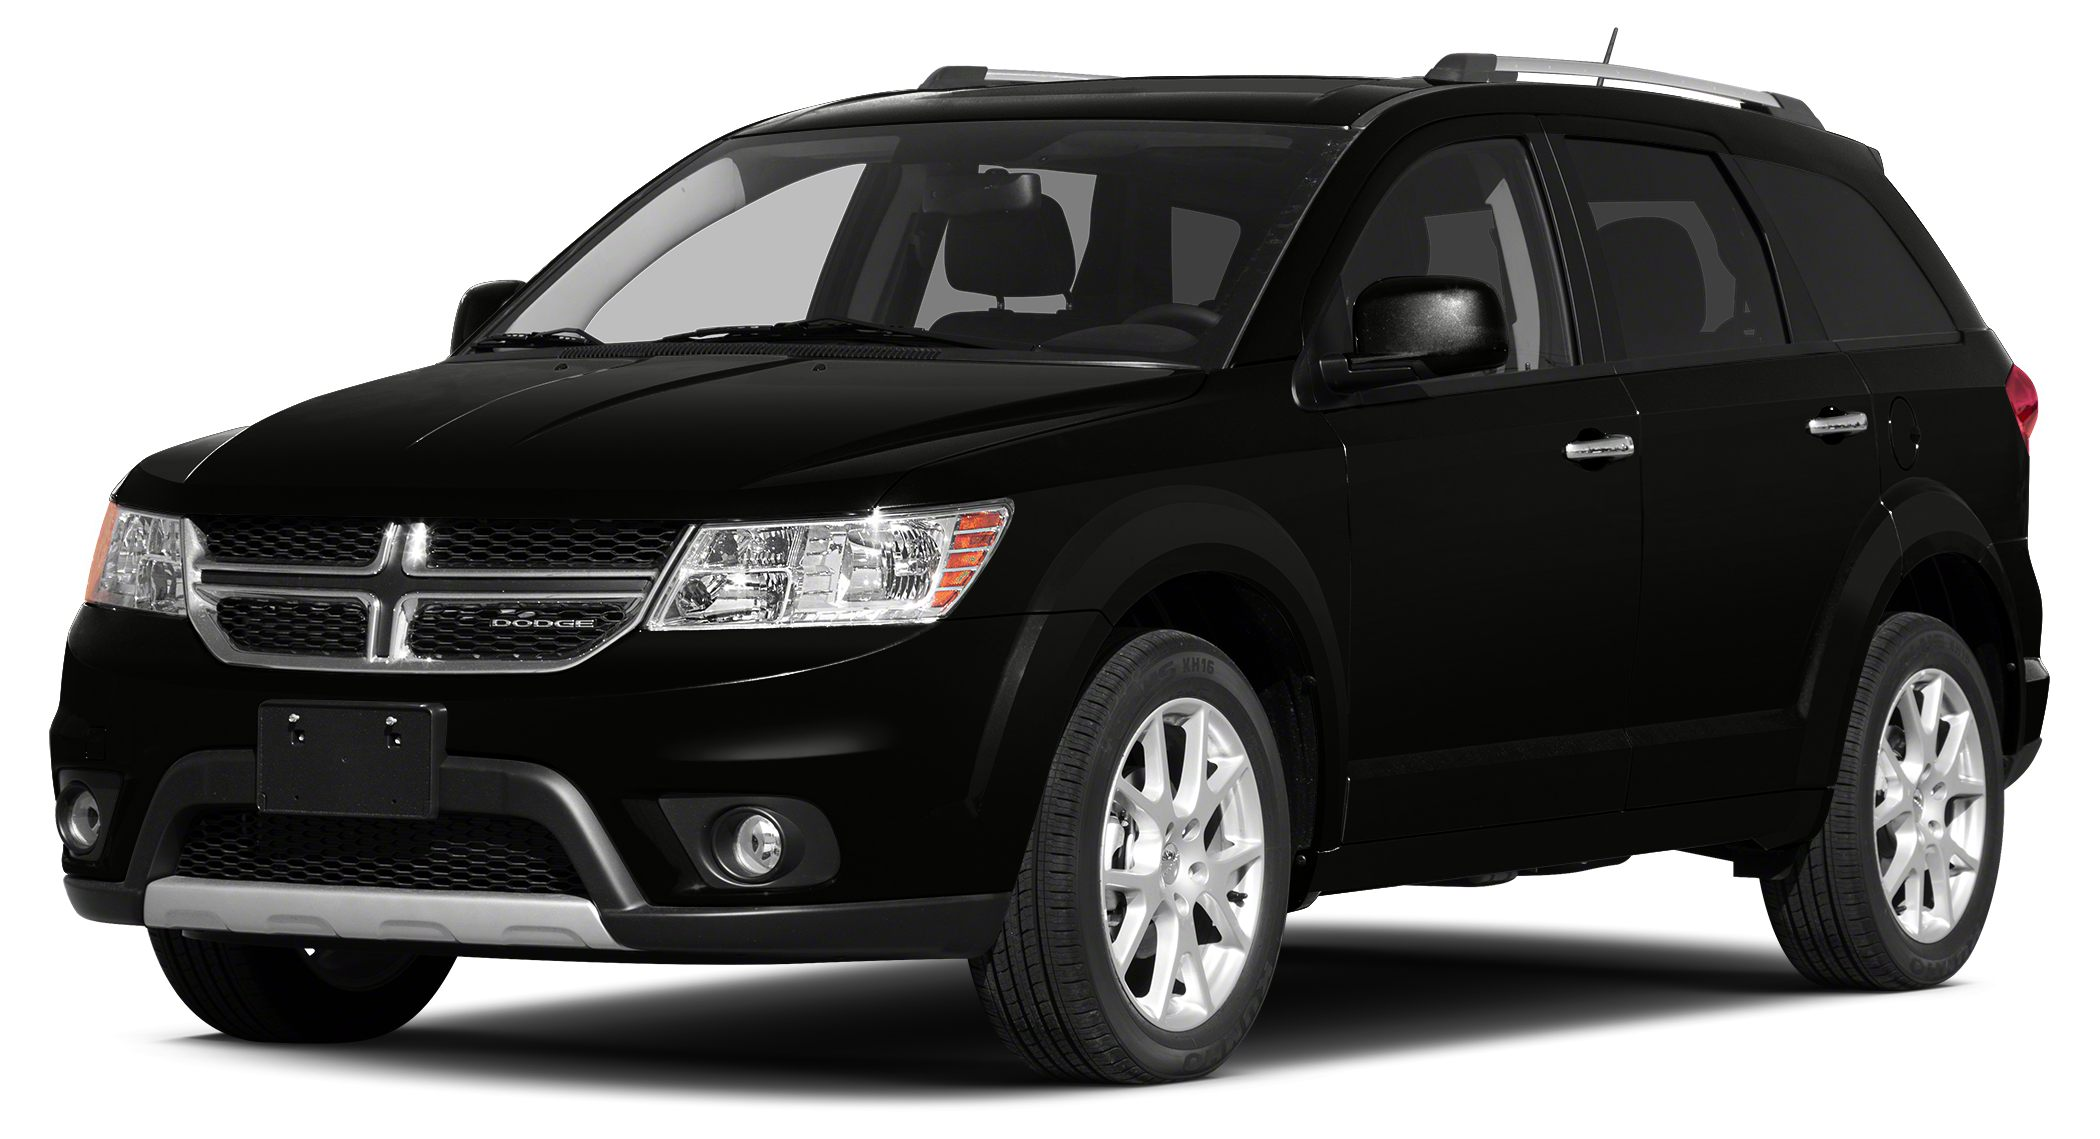 2014 Dodge Journey RT RT trim FUEL EFFICIENT 24 MPG Hwy16 MPG City Third Row Seat Heated Leat